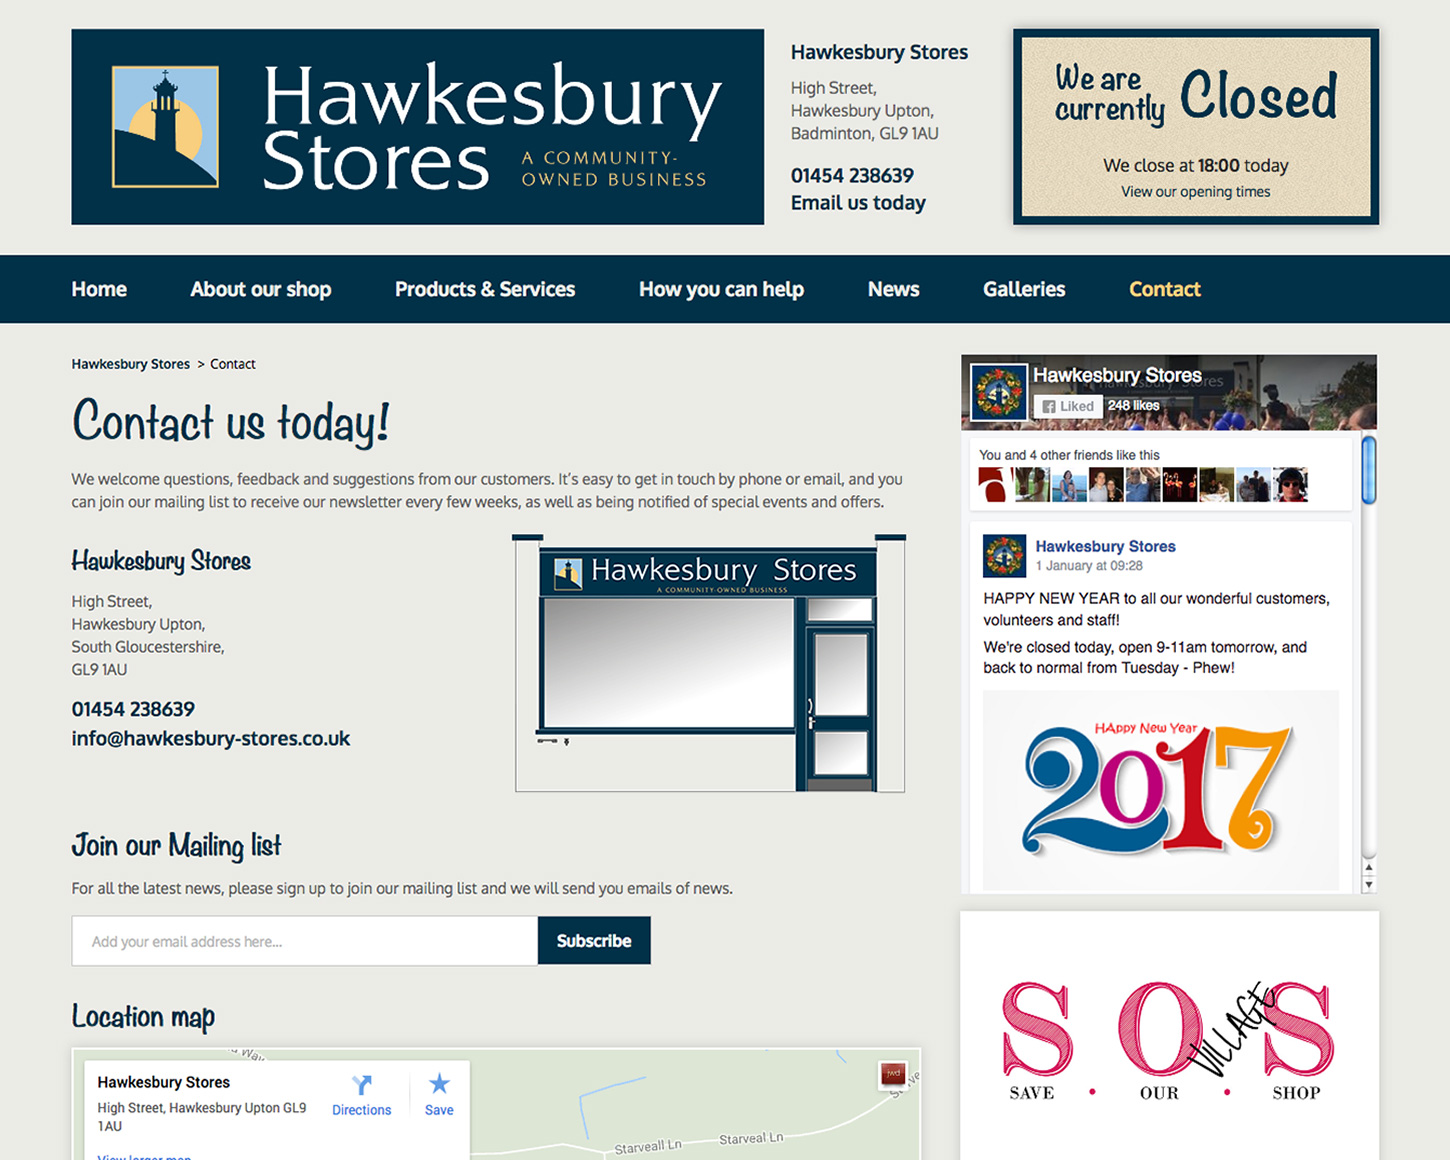 Hawkesbury Stores website